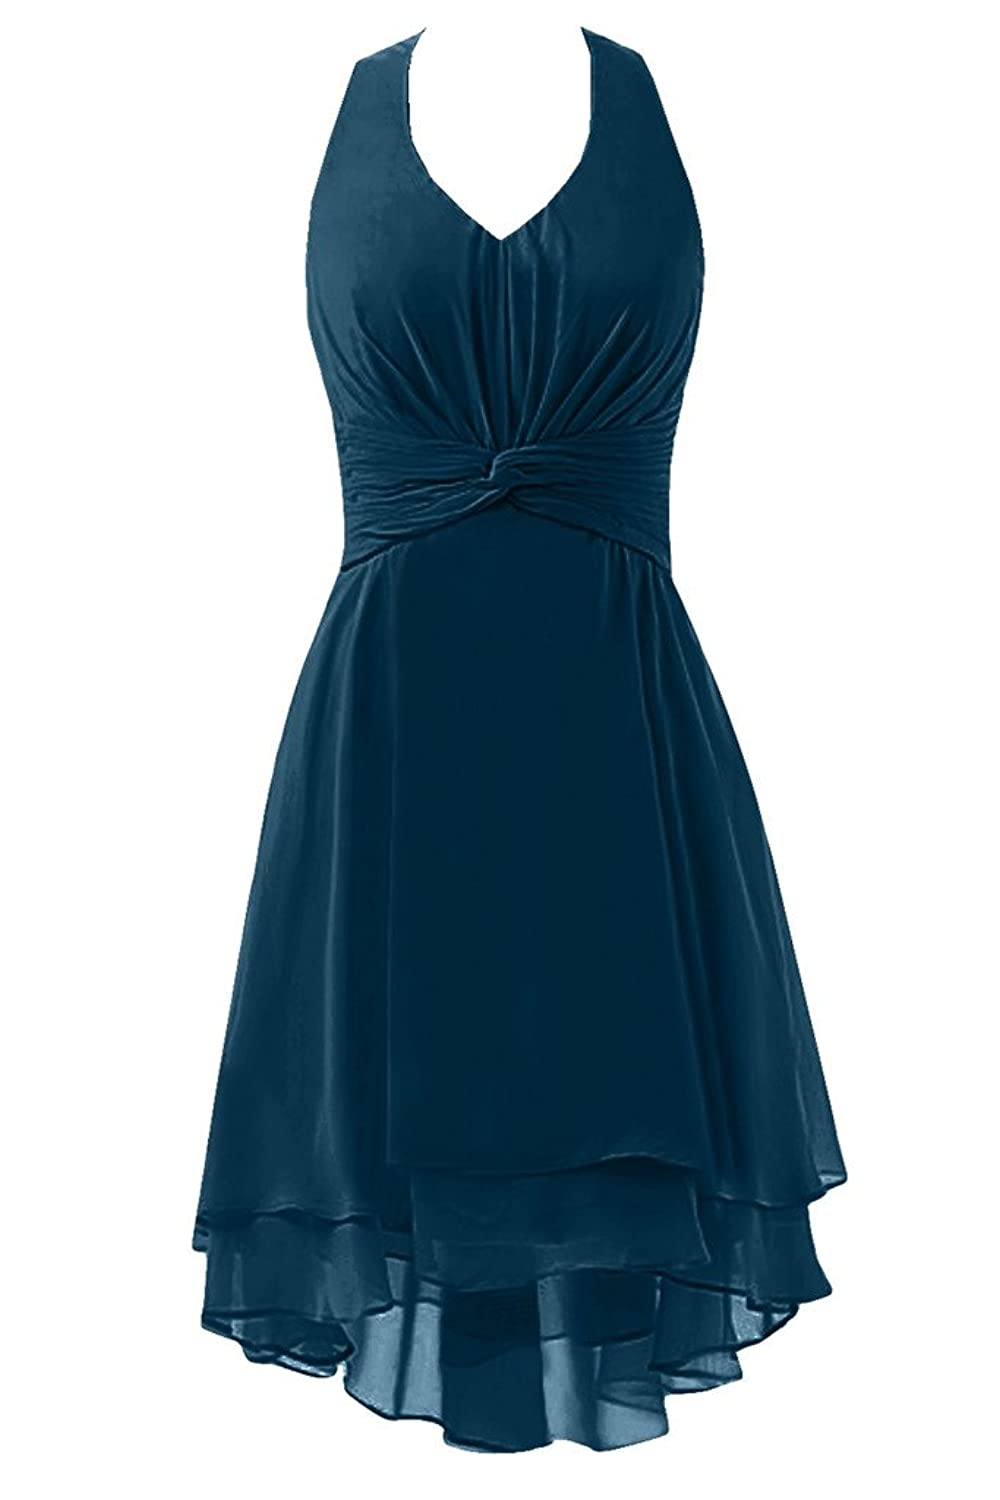 Sunvary Retro V Neck Halter Chiffon Knee Length Party Dresses Bridesmaid Gowns for 2016 Women